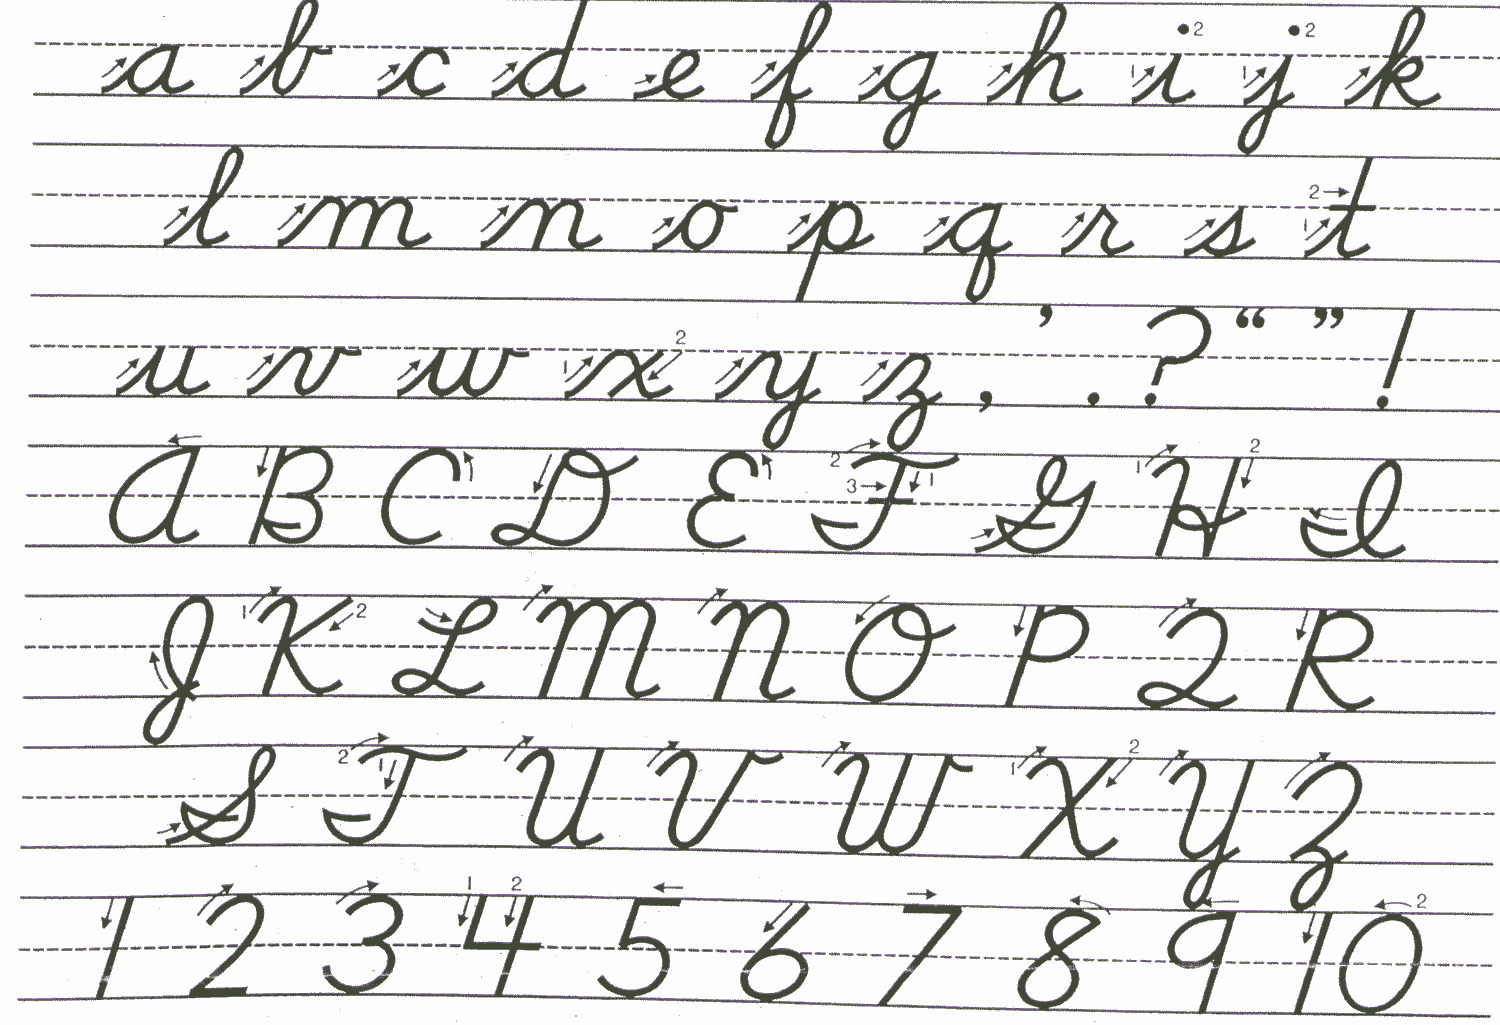 cursive writing alphabet printable Name:///// cursive alphabet lower-case letters /a/////b/////c/////d/////e//// /f/////g/////h/////i/////j///// /k/////l/////m/////n///// /o/////p/////q/////r/////s///.